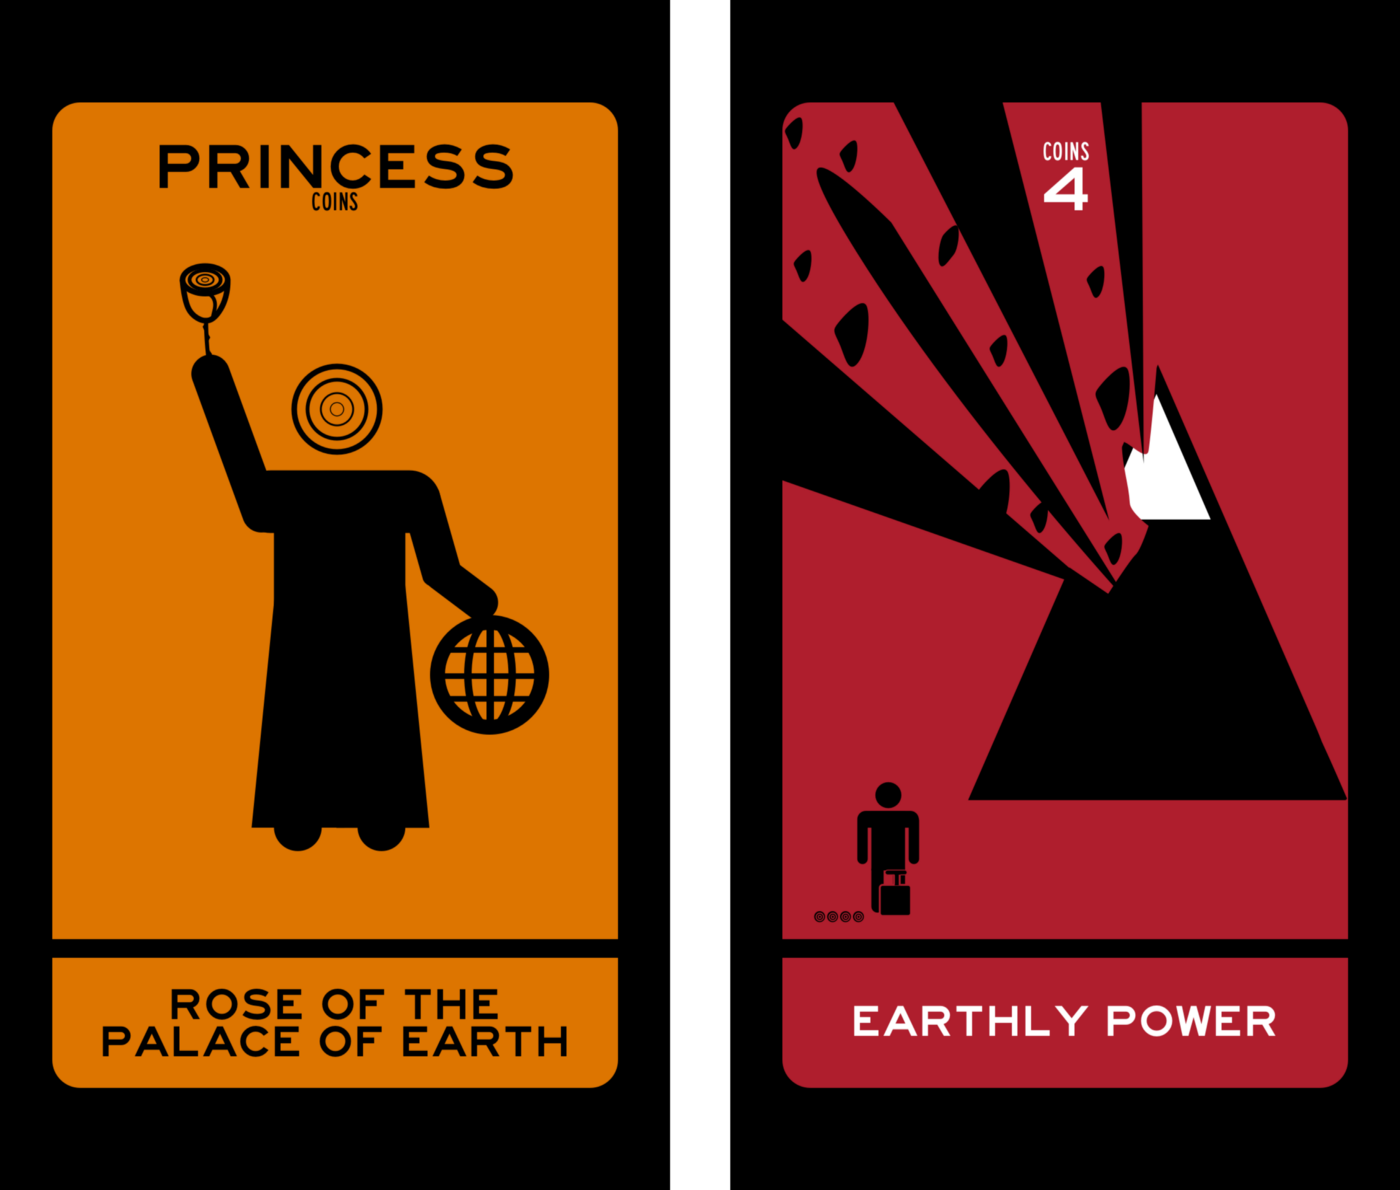 A Brief Saga Concerning the Making of a Tarot Deck About the